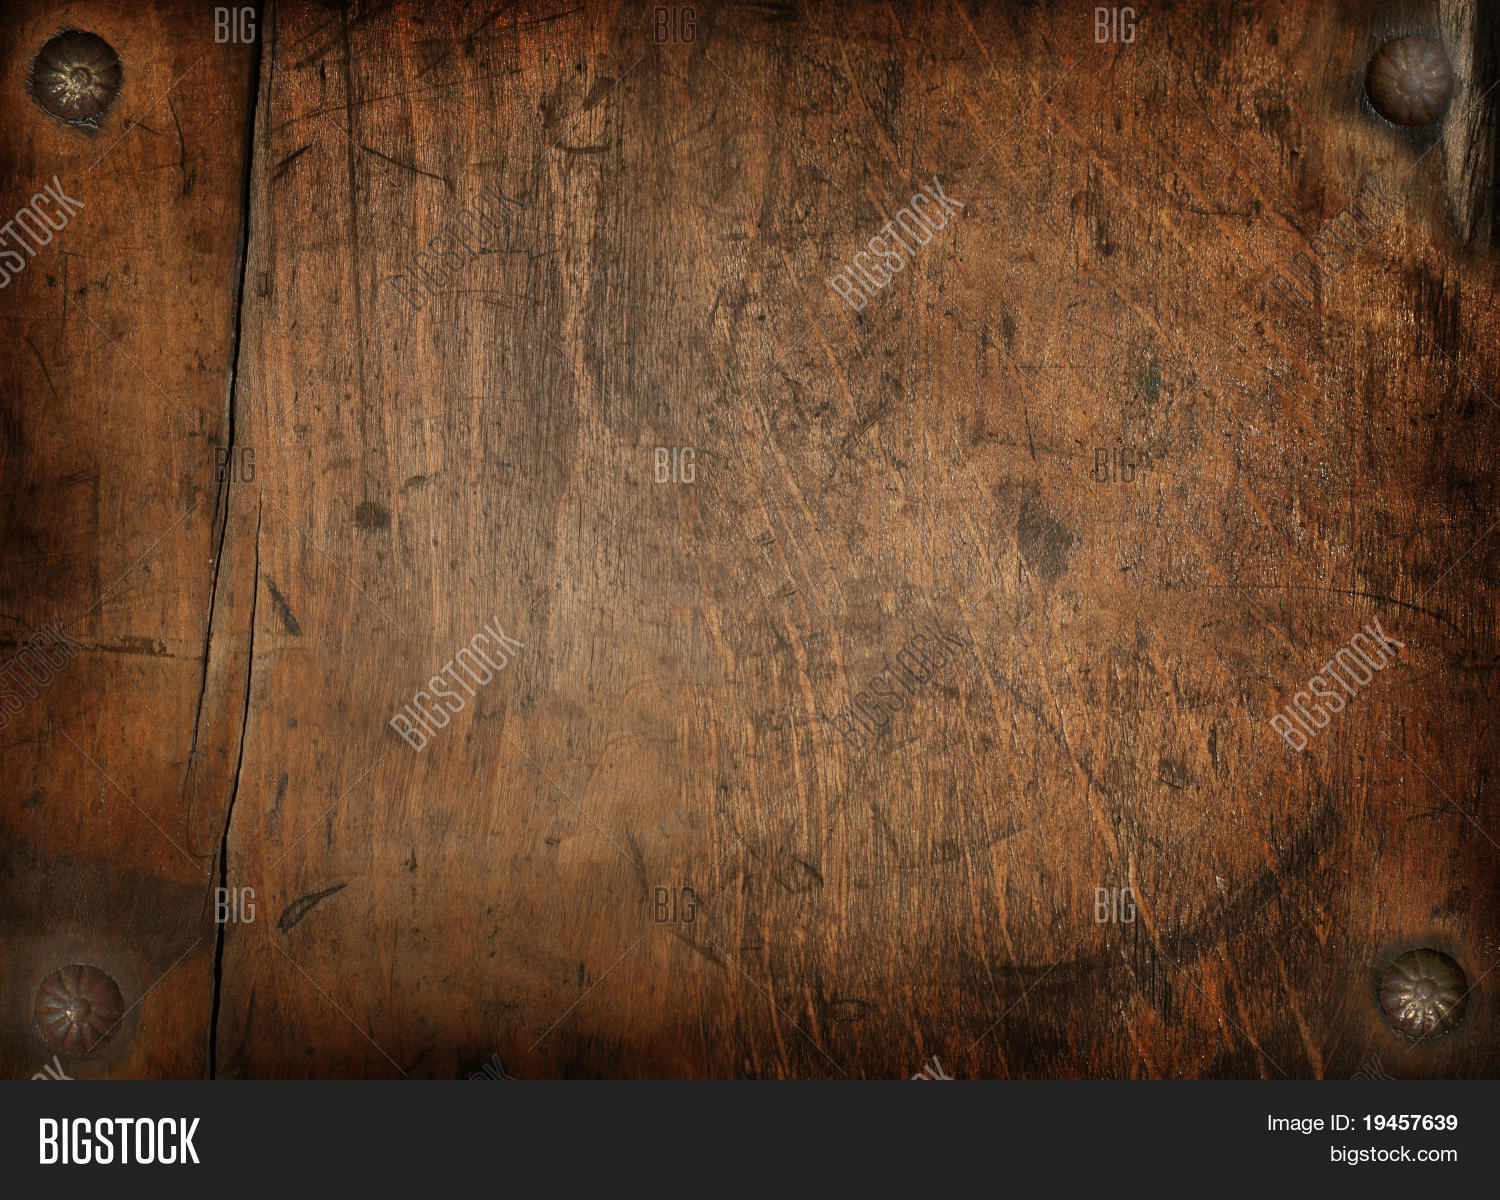 vintage wood image photo free trial